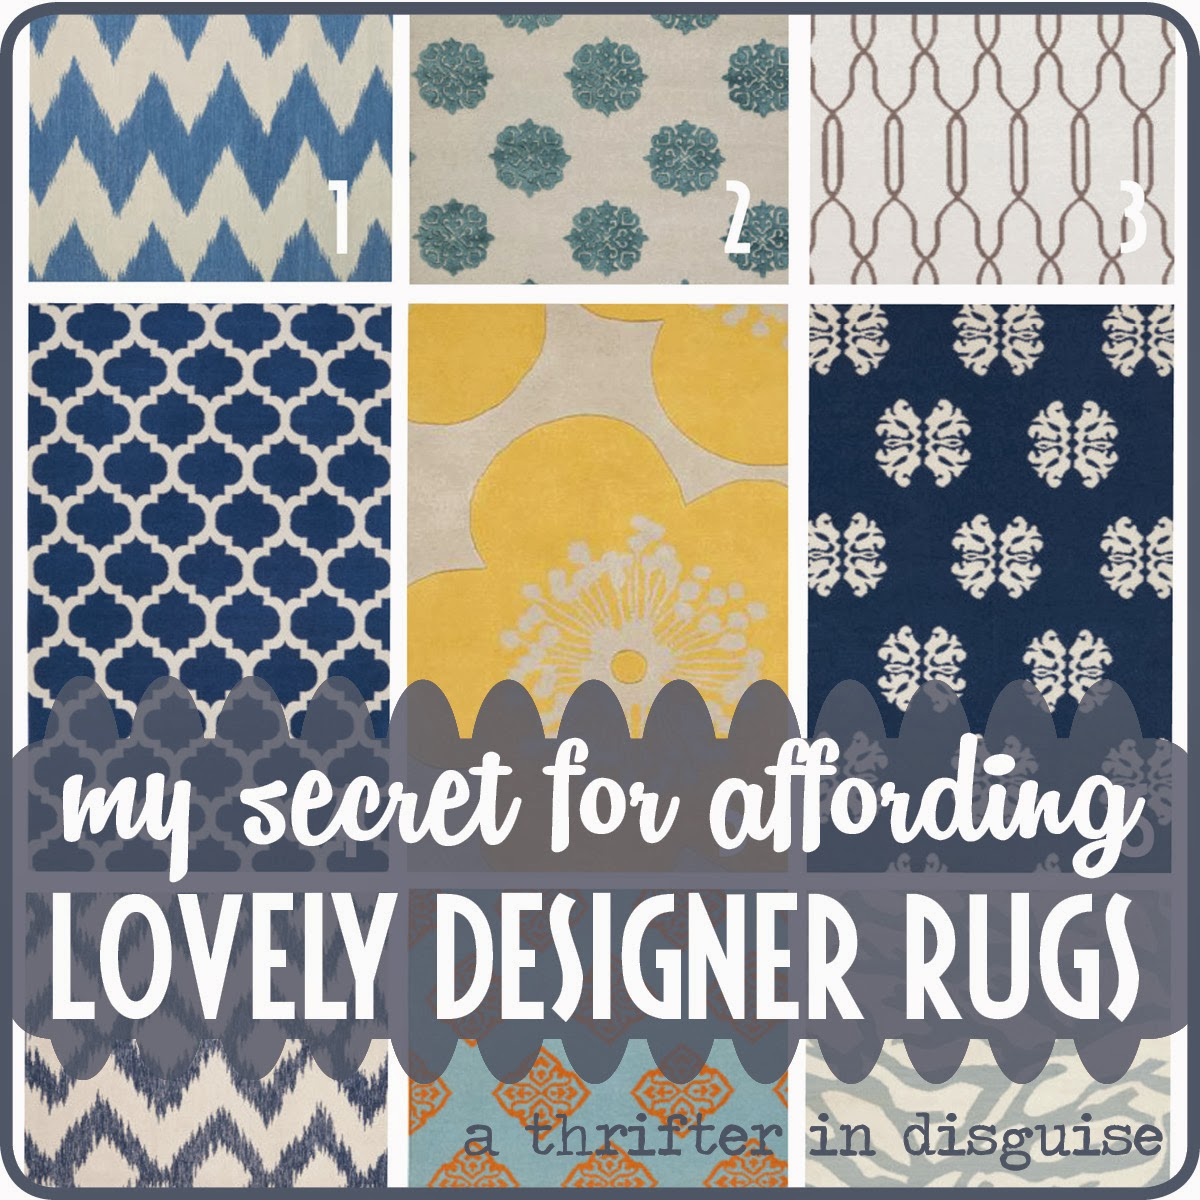 My secret to buying designer rugs at a fraction of the price